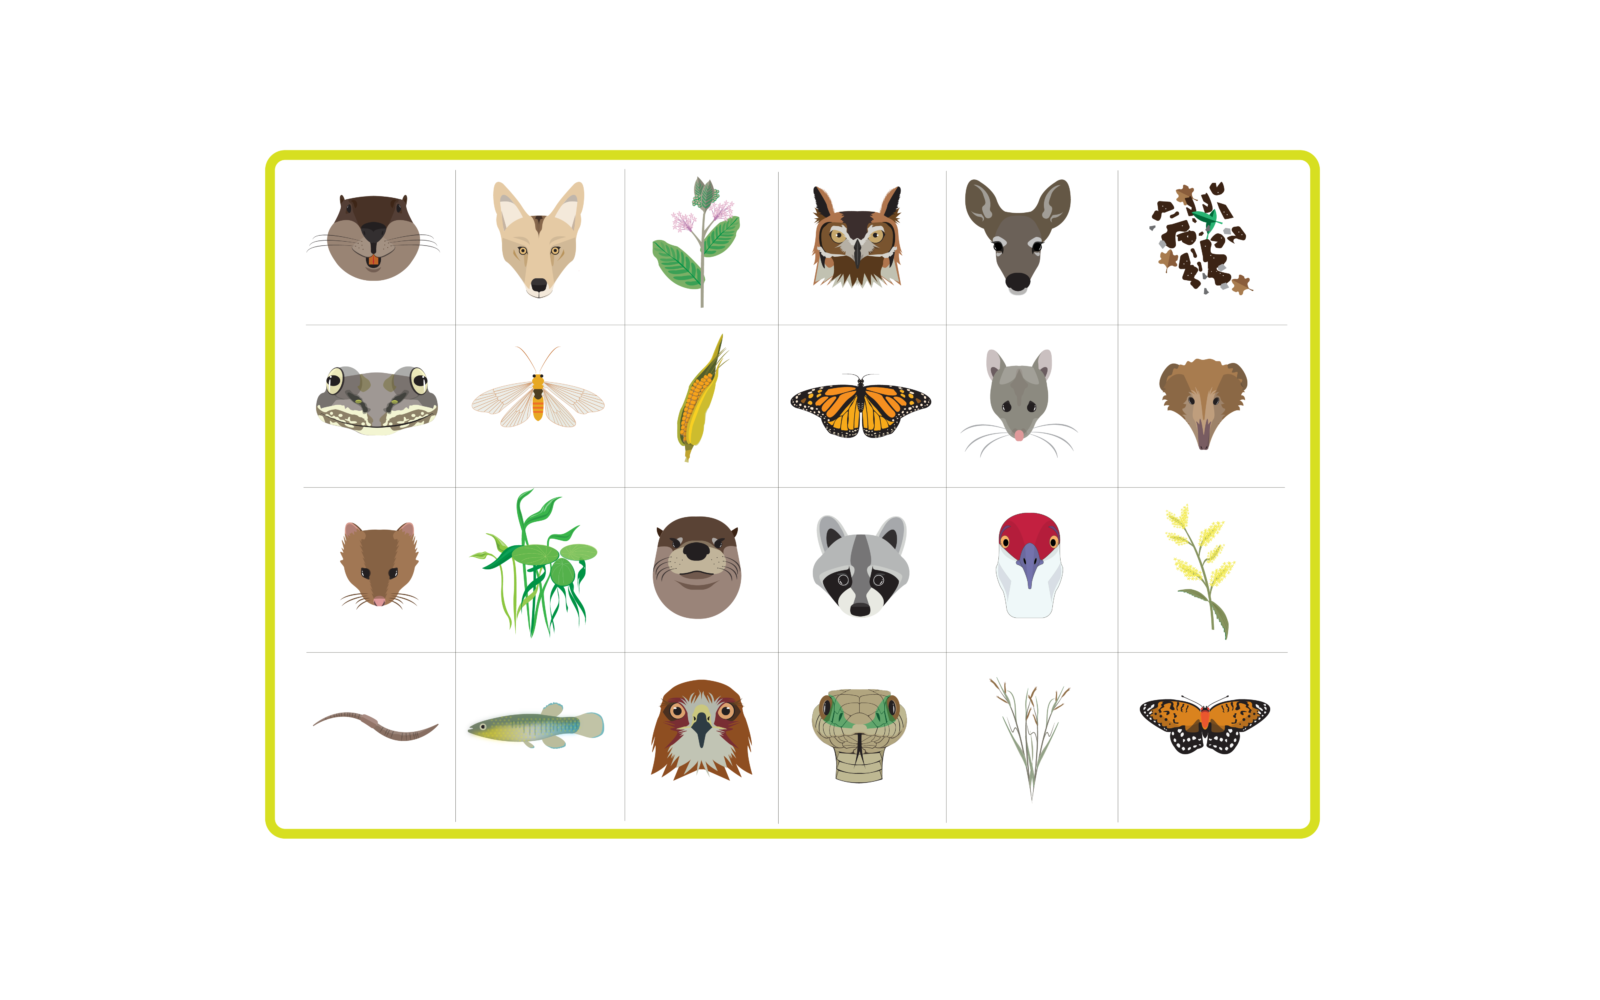 food chains and webs Food web / food chain vocabulary word list a list of words related to food webs and food chains click here for k-3 themes all themes animals food people plants sports.